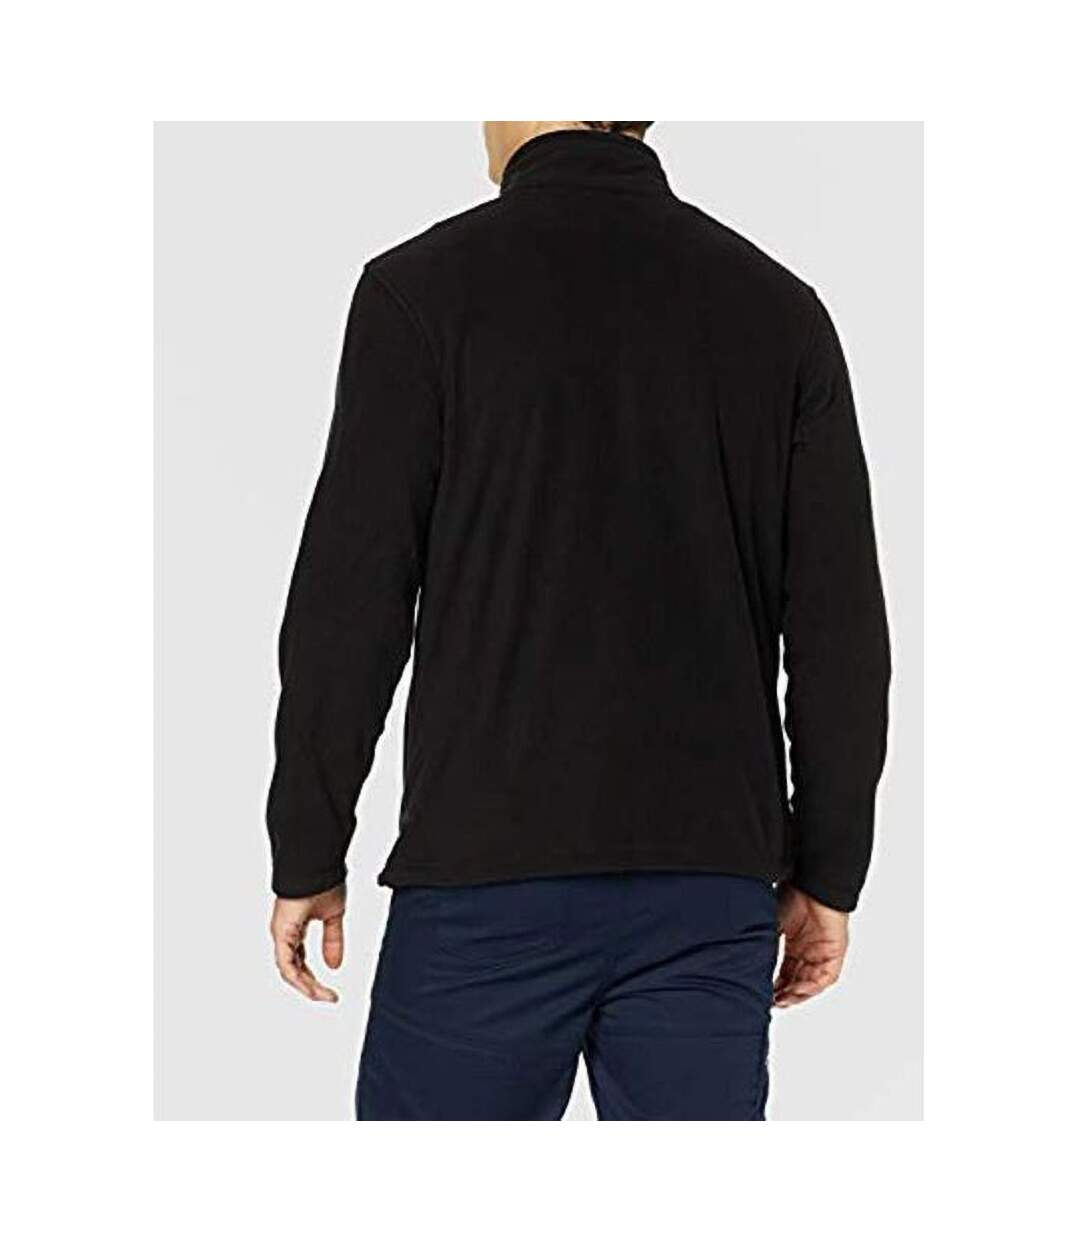 Regatta Mens Plain Micro Fleece Full Zip Jacket (Layer Lite) (Black) - UTBC2042